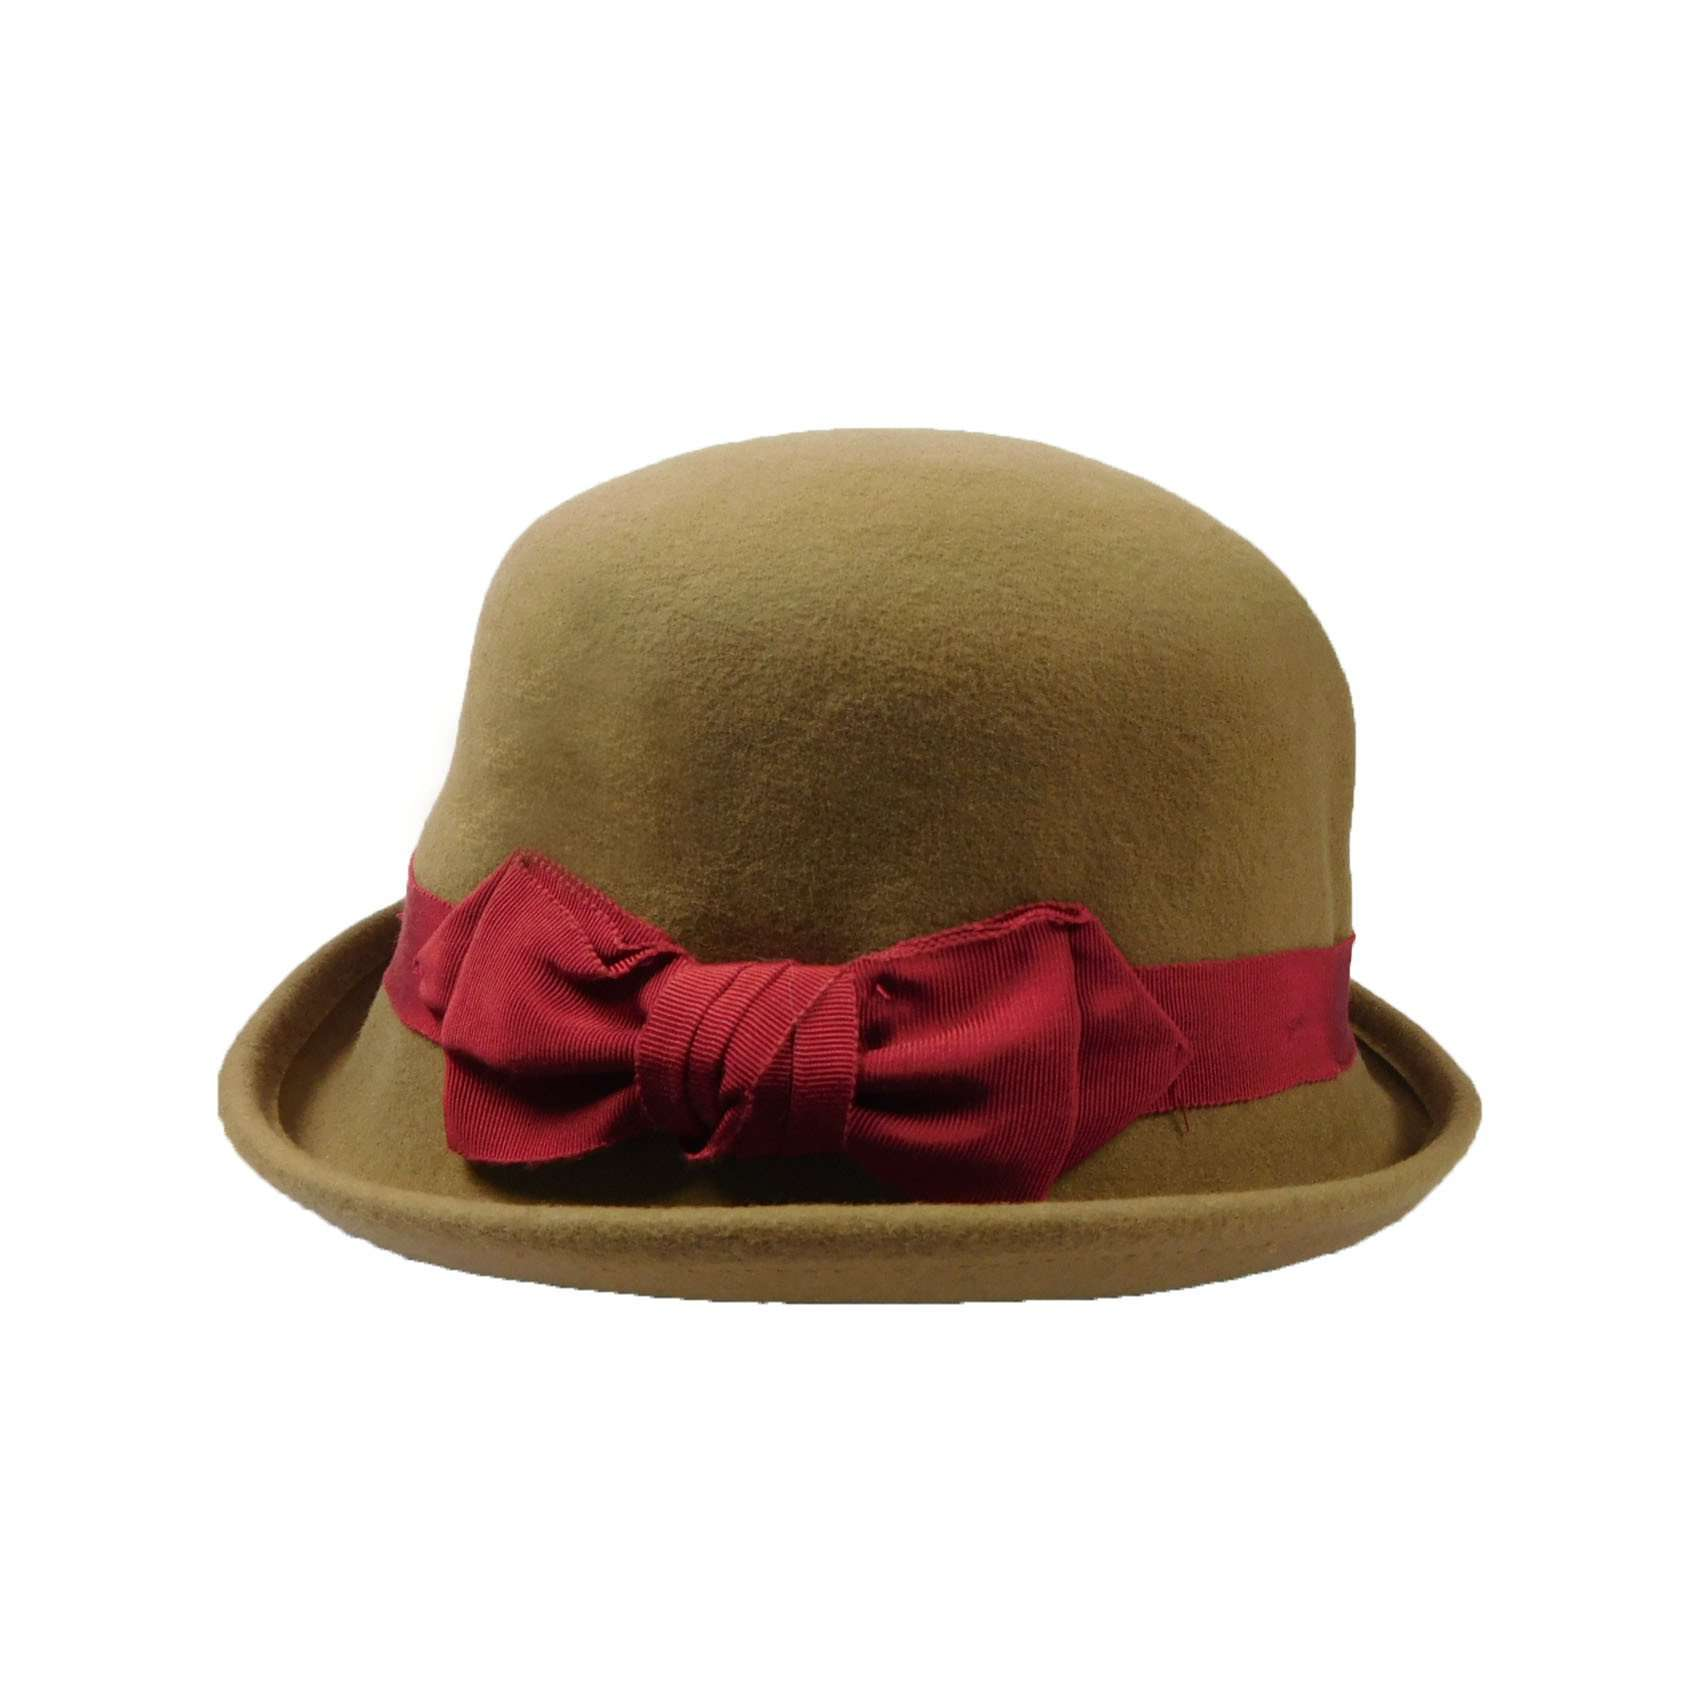 Bowler with Red Satin Bow - SetarTrading Hats